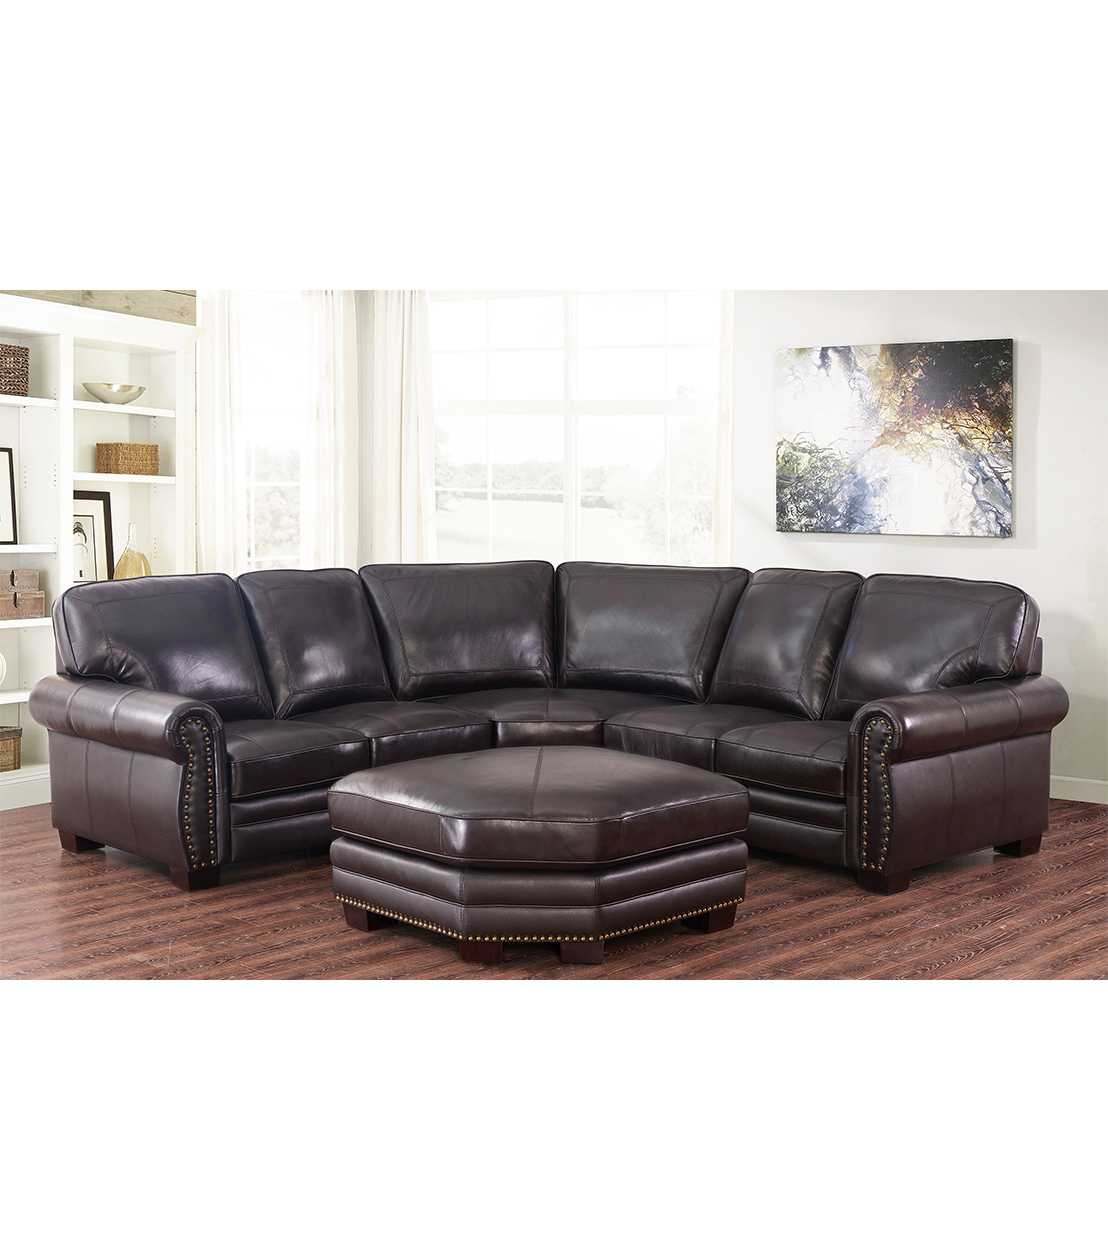 Well Liked Adeline 3 Piece Sectionals Inside Sectionals : Adeline Leather Sectional (View 20 of 20)